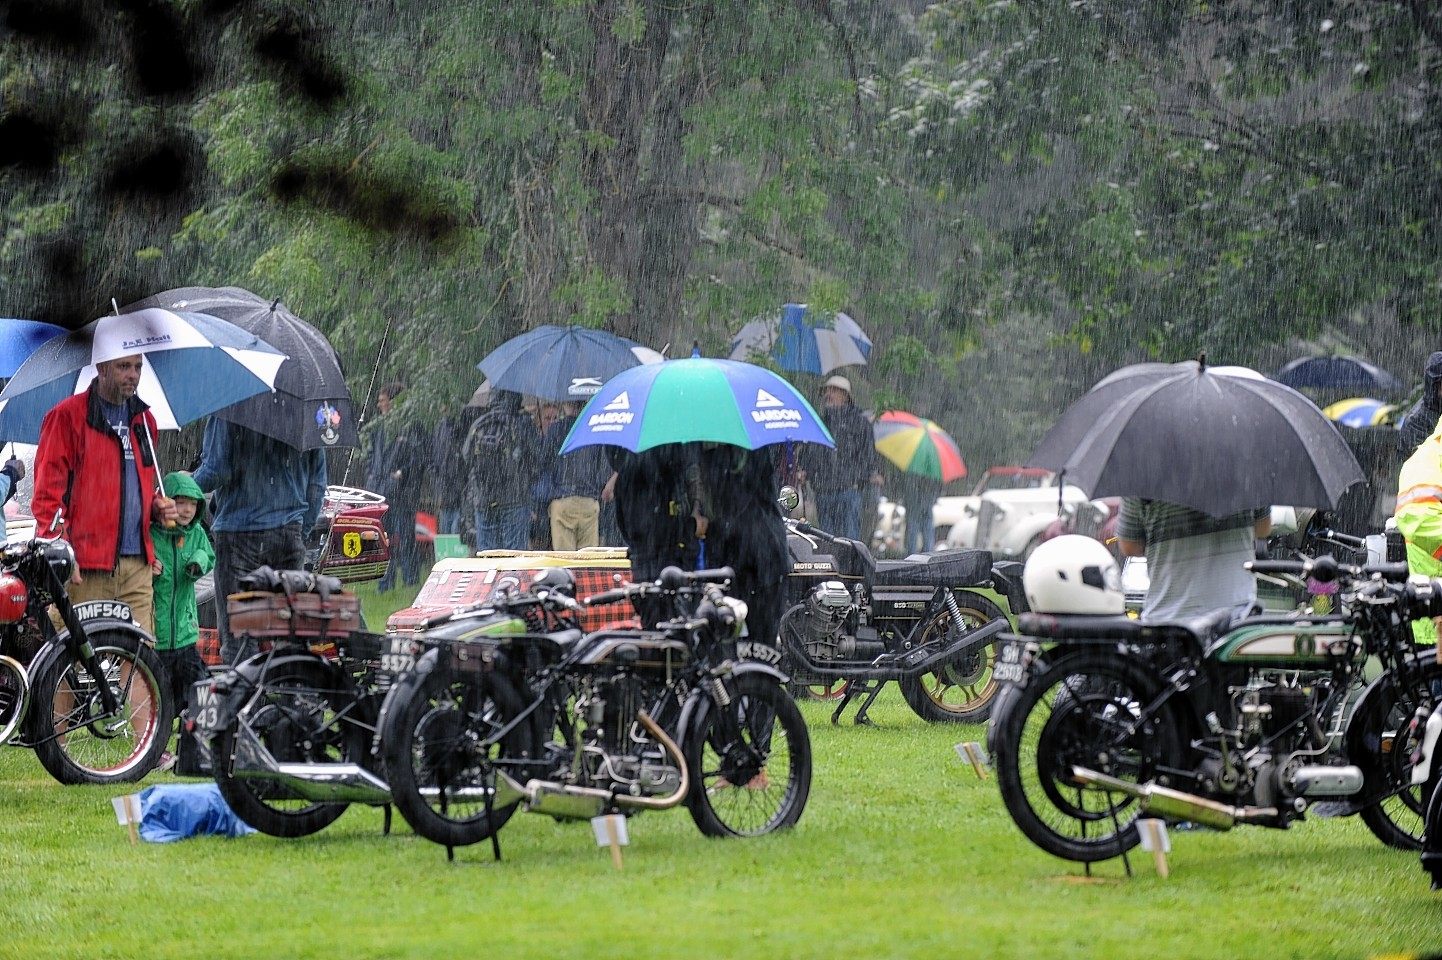 Rain falls on the show at Brodie Castle